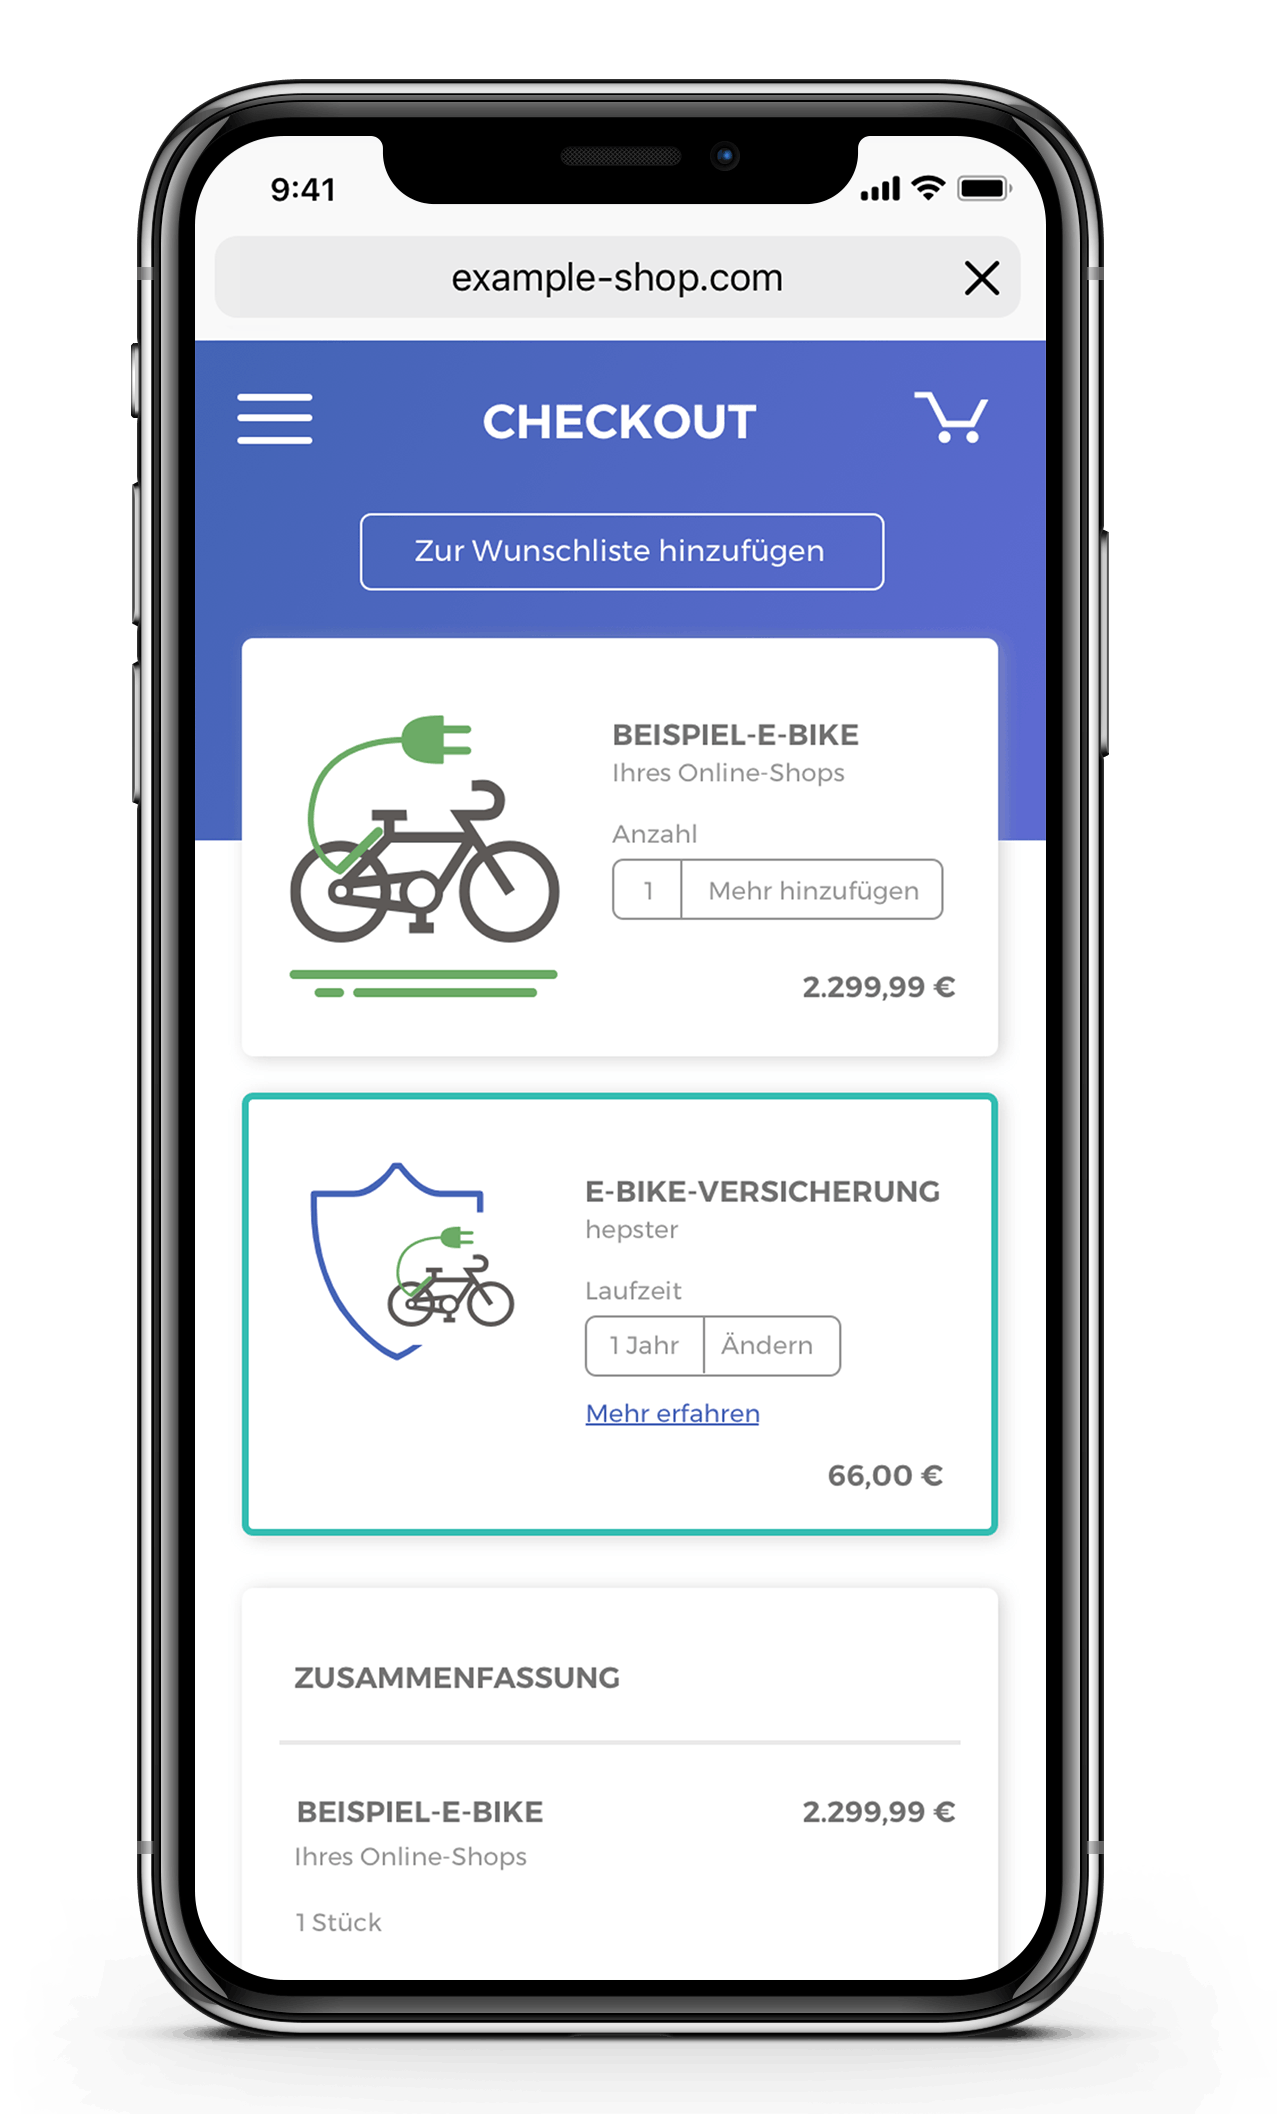 https://images.prismic.io/businessrepository/8abbc940-6092-4619-aa62-acd7d18e2b09_E-Bike-Versicherung-Retail-integrieren.png?auto=compress,format